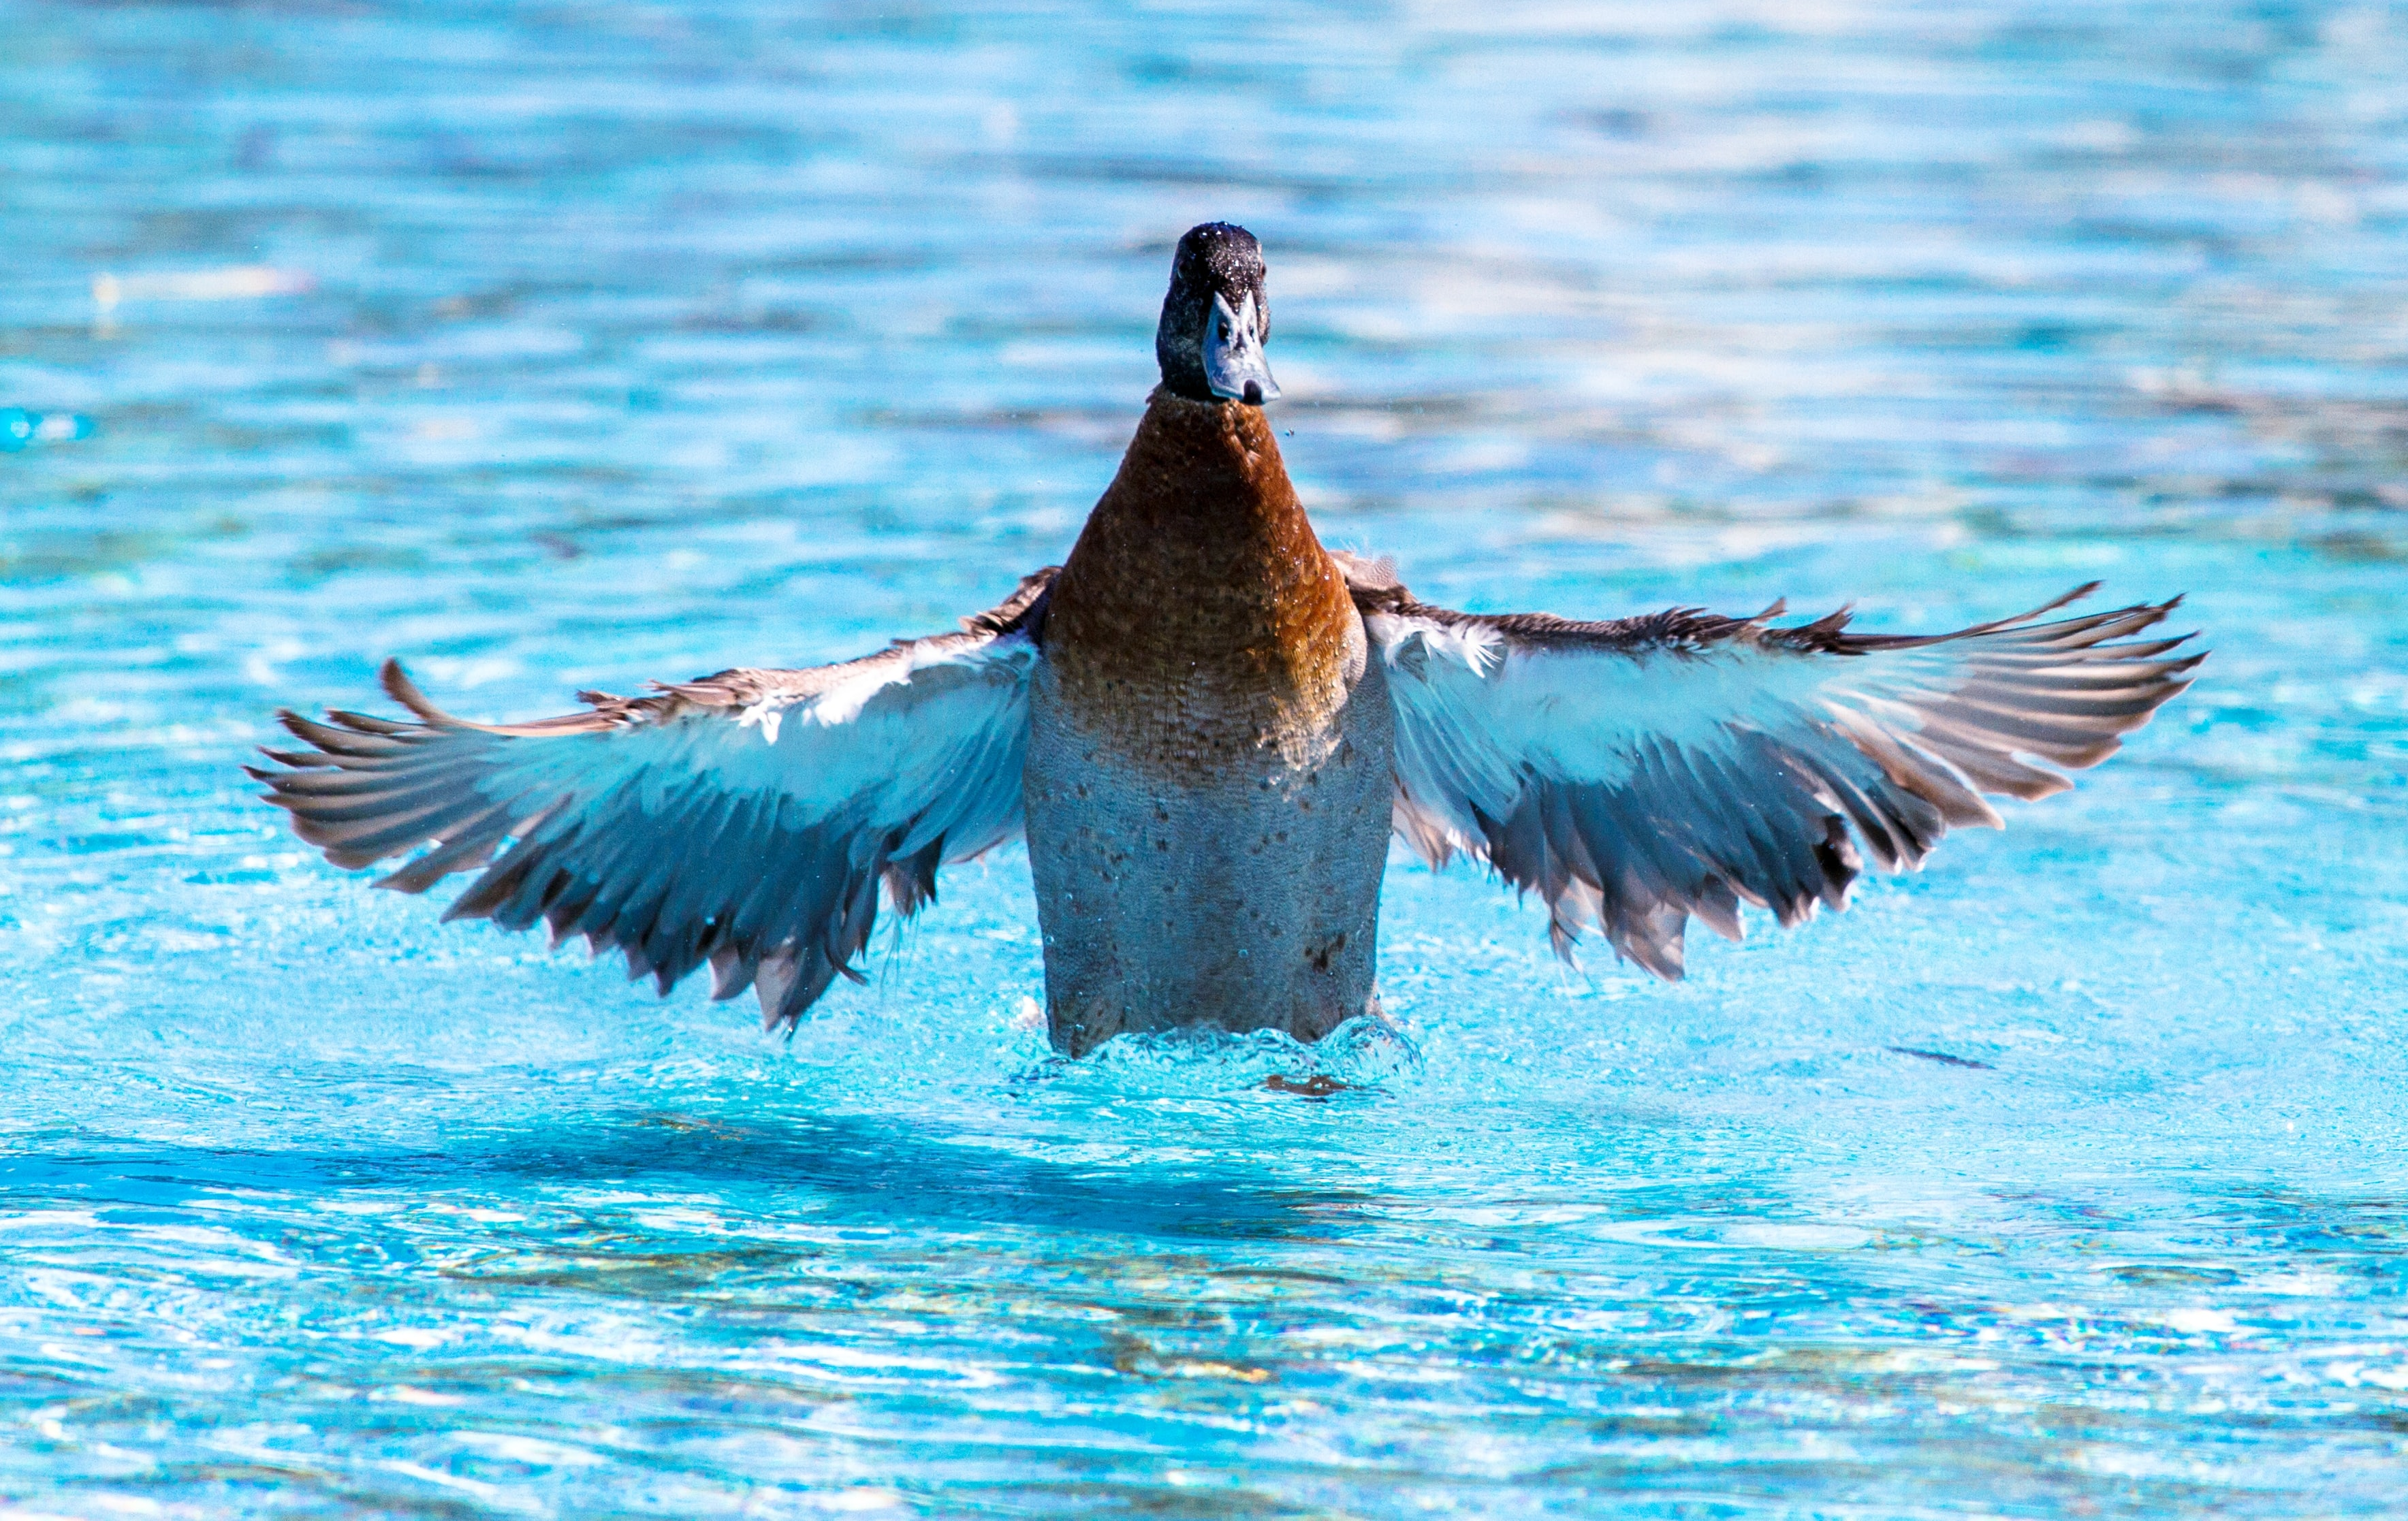 brown, gray, and white duck spreading wings while on top the water at daytime